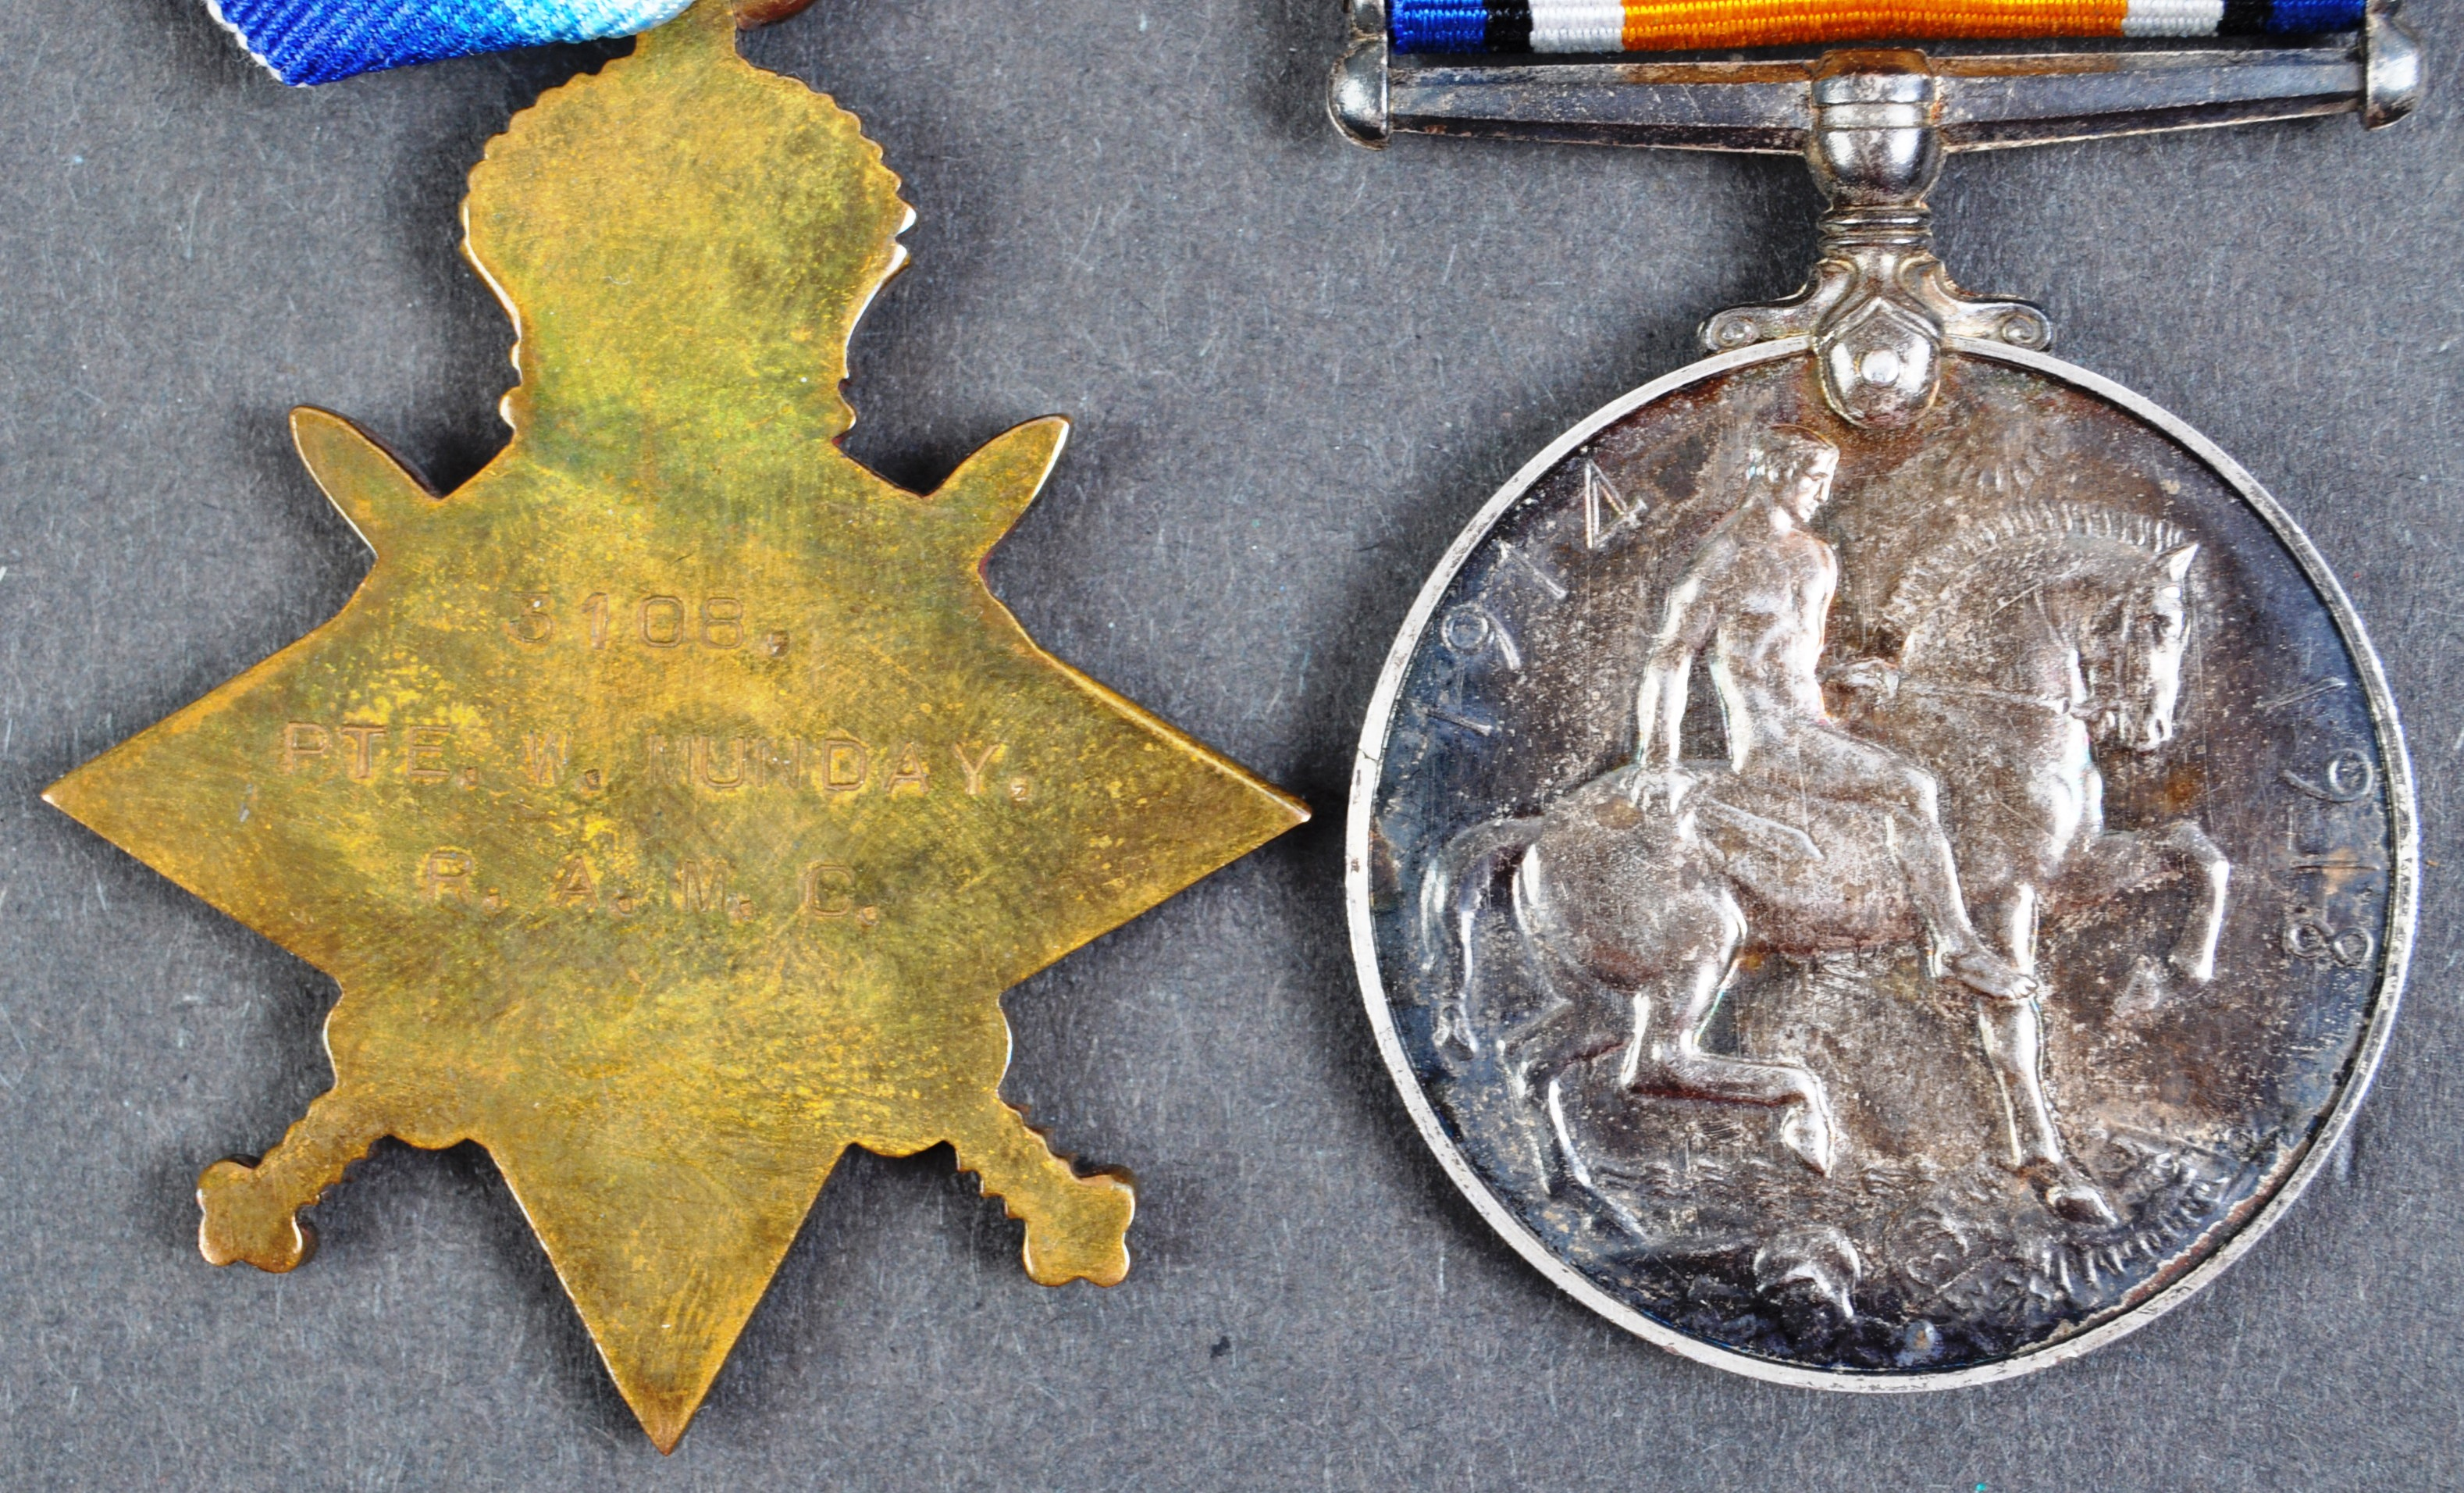 WWI & WWII INTEREST MEDAL GROUP - ACTING SERGEANT IN THE RAMC - Image 6 of 8